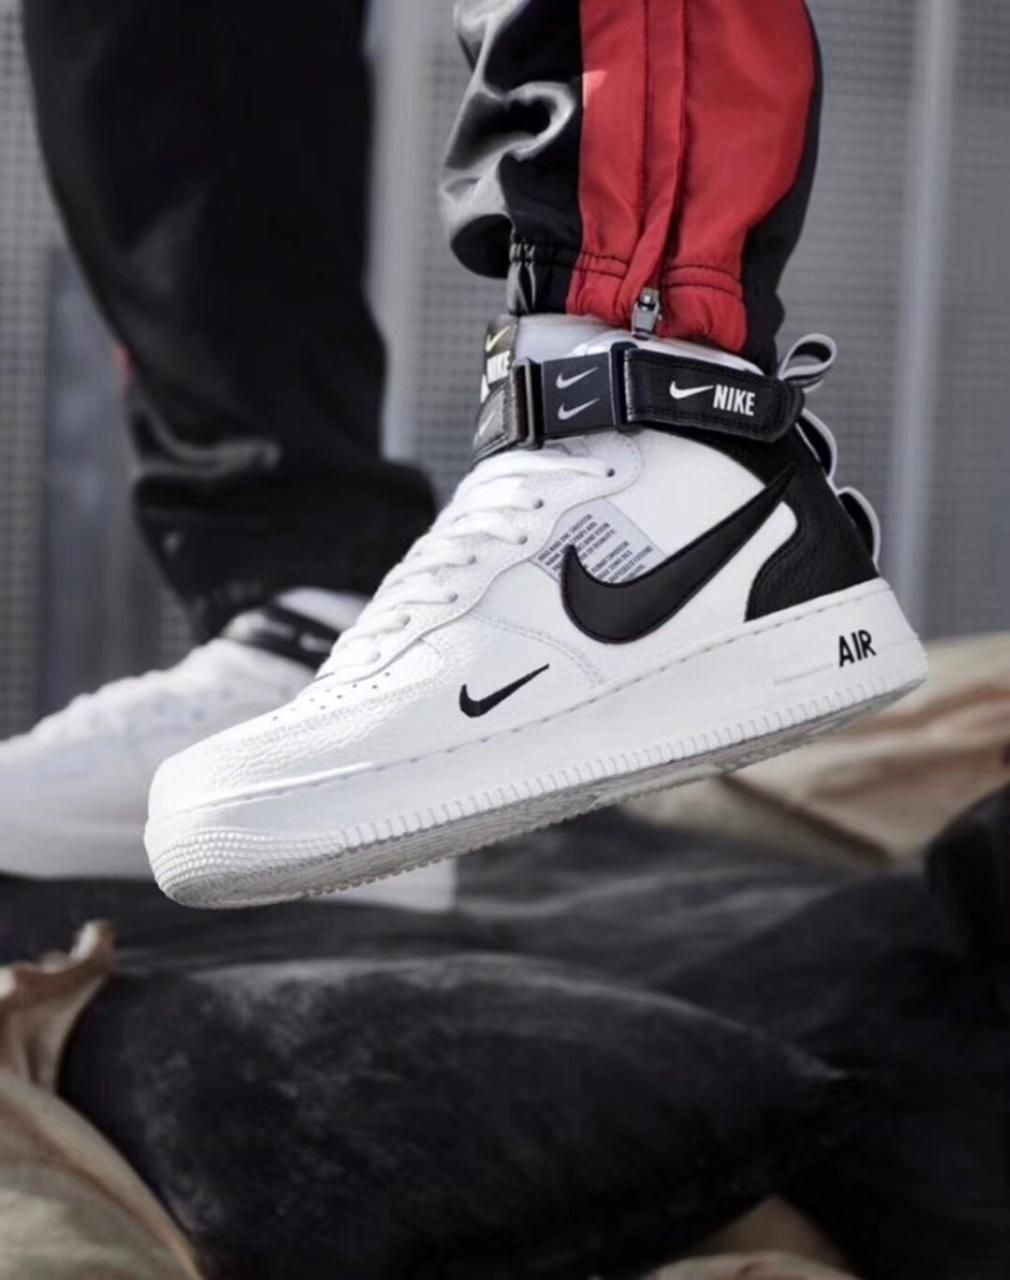 153 Best Sneakers images in 2020 | Sneakers, Shoe boots, Me